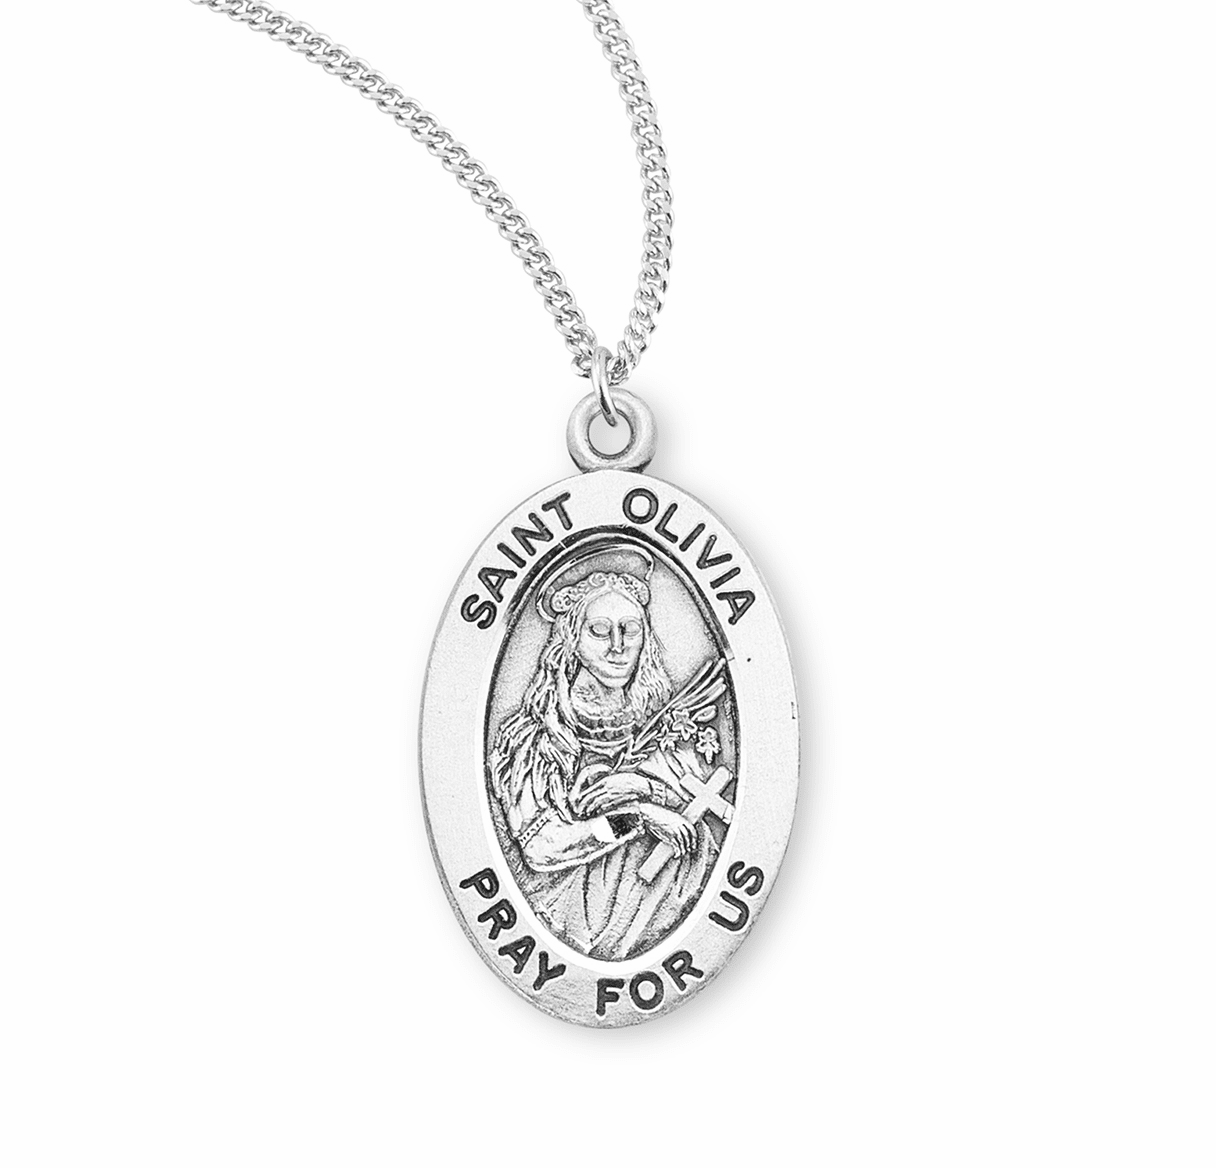 HMH Religious St Olivia Catholic Saint Sterling Silver Medal Necklace